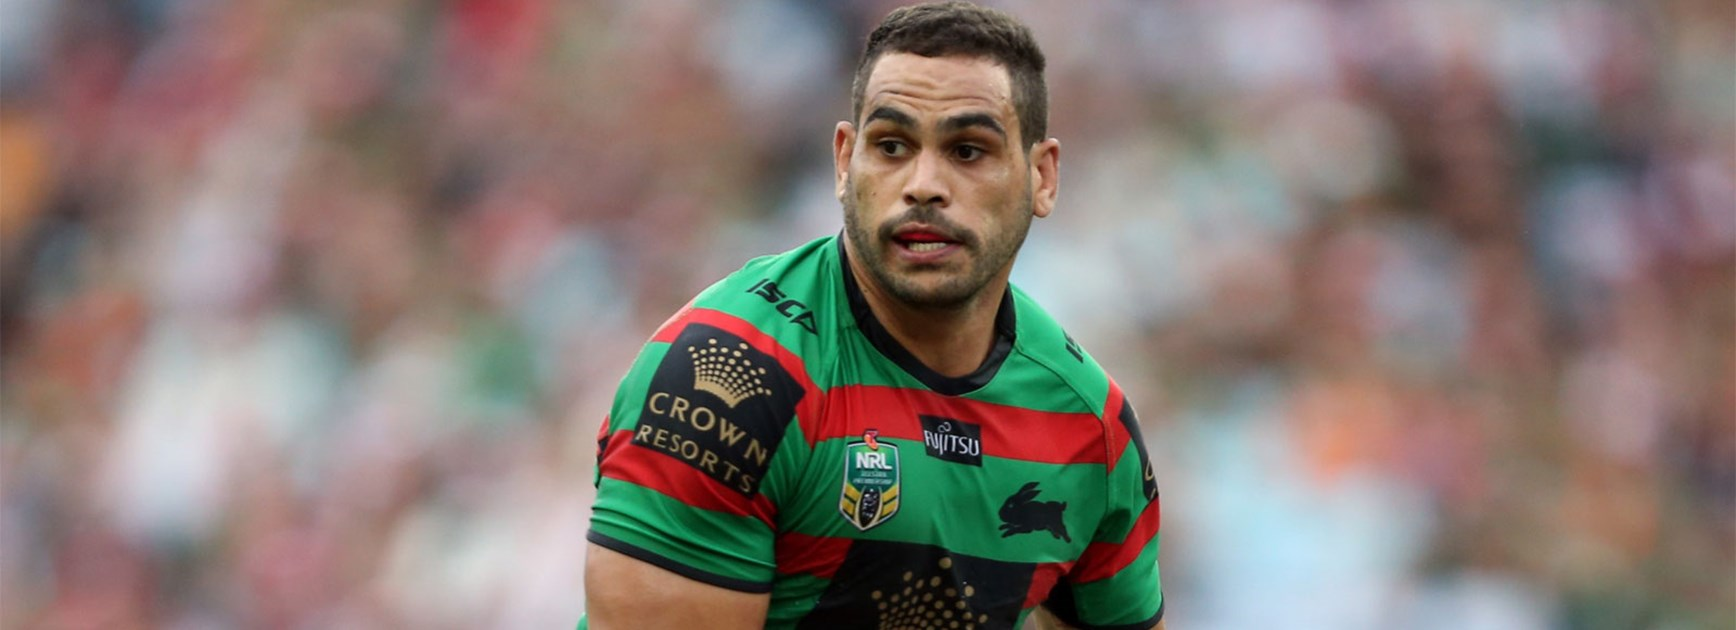 Souths coach Michael Maguire could shift Greg Inglis to five-eighth following the long term injury to Adam Reynolds.